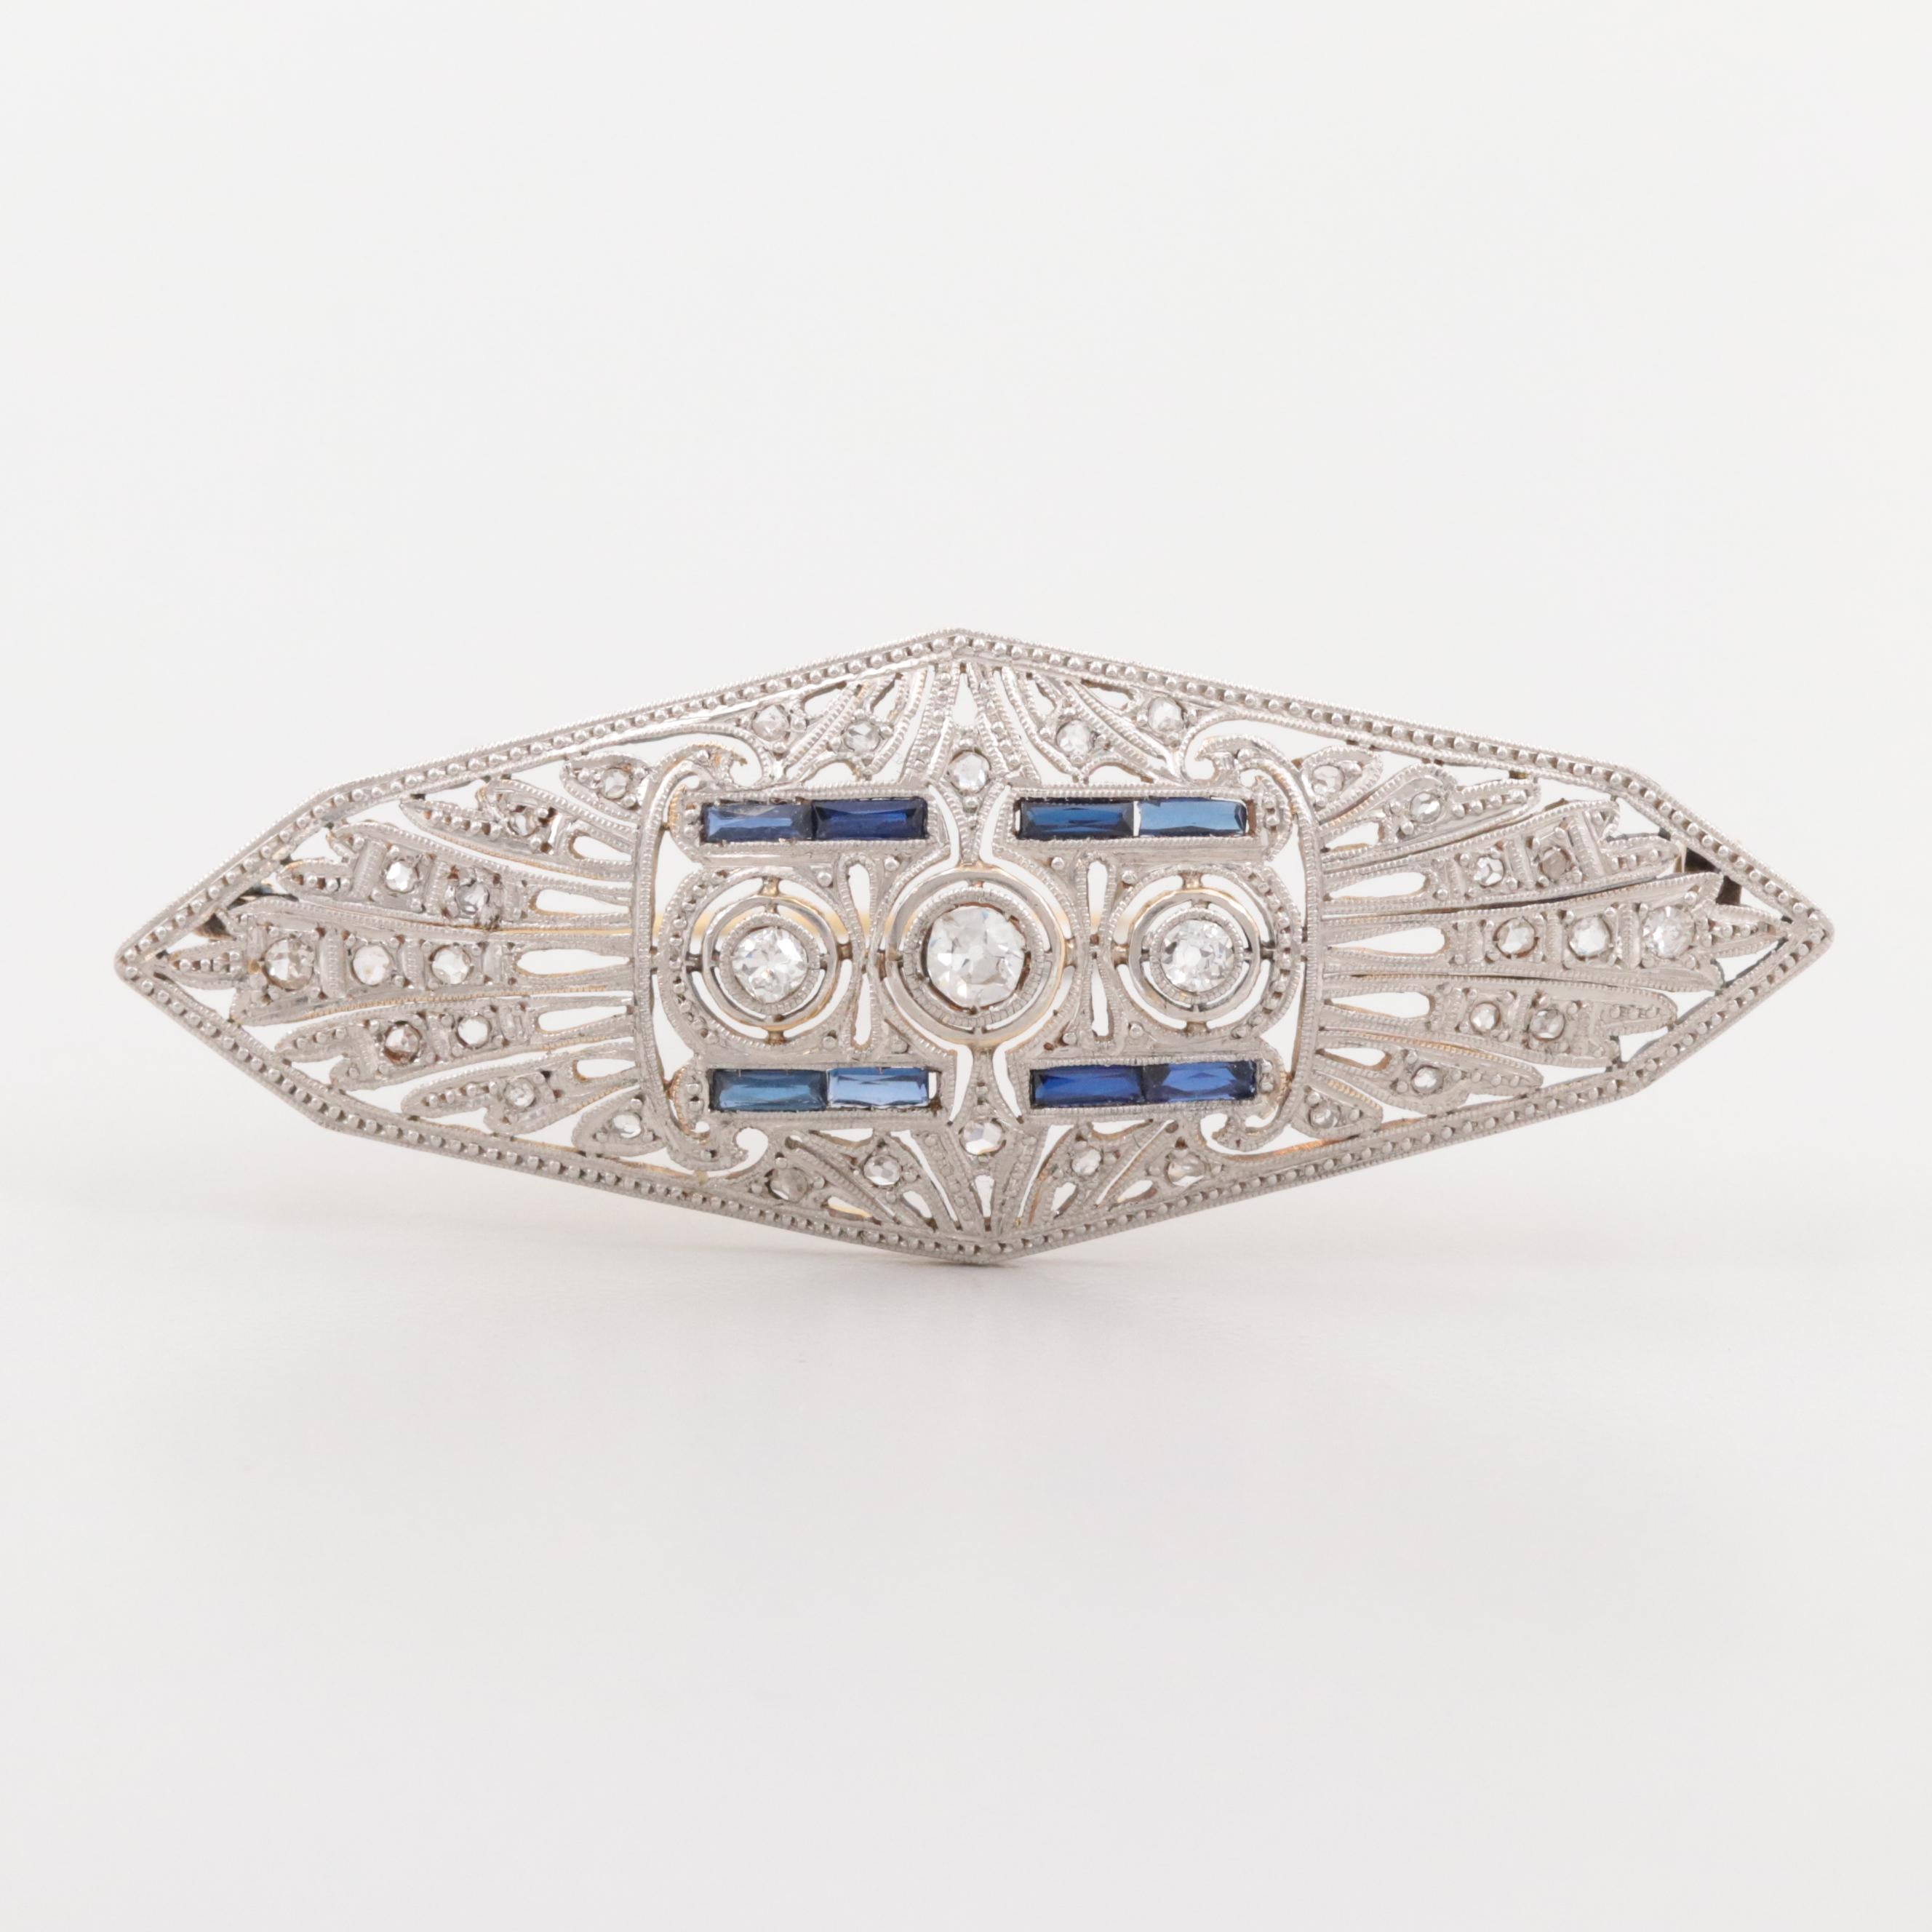 Early Art Deco 18K Yellow Gold Diamond and Synthetic Blue Sapphire Brooch